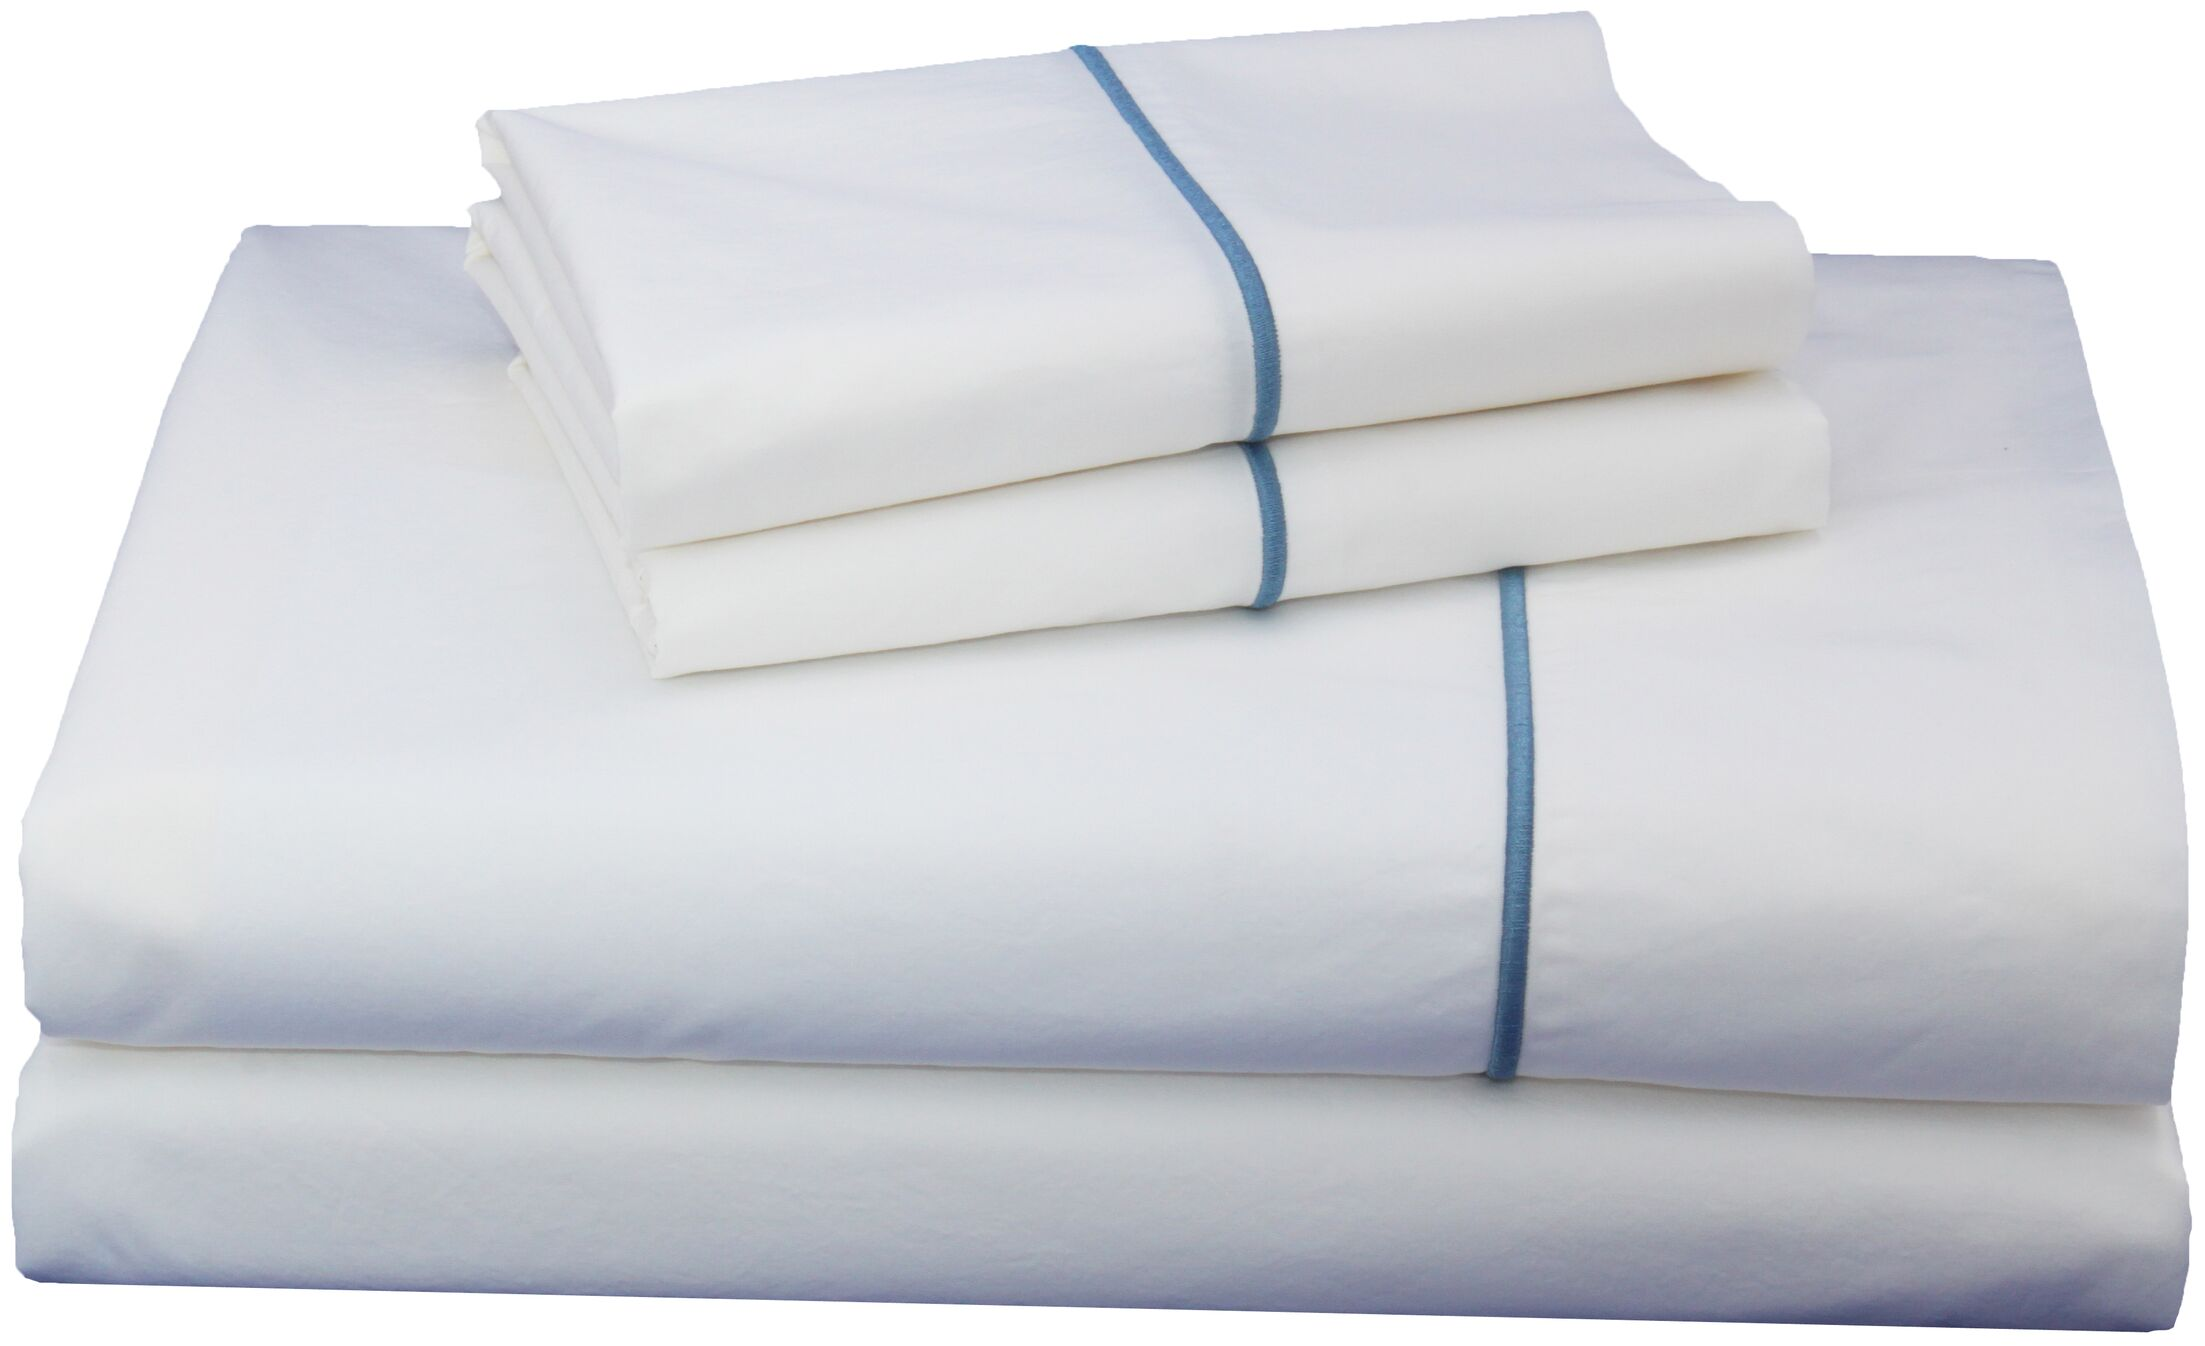 Luxurious 300 Thread Count Cotton Sheet Set Size: Twin XL, Color: Blue